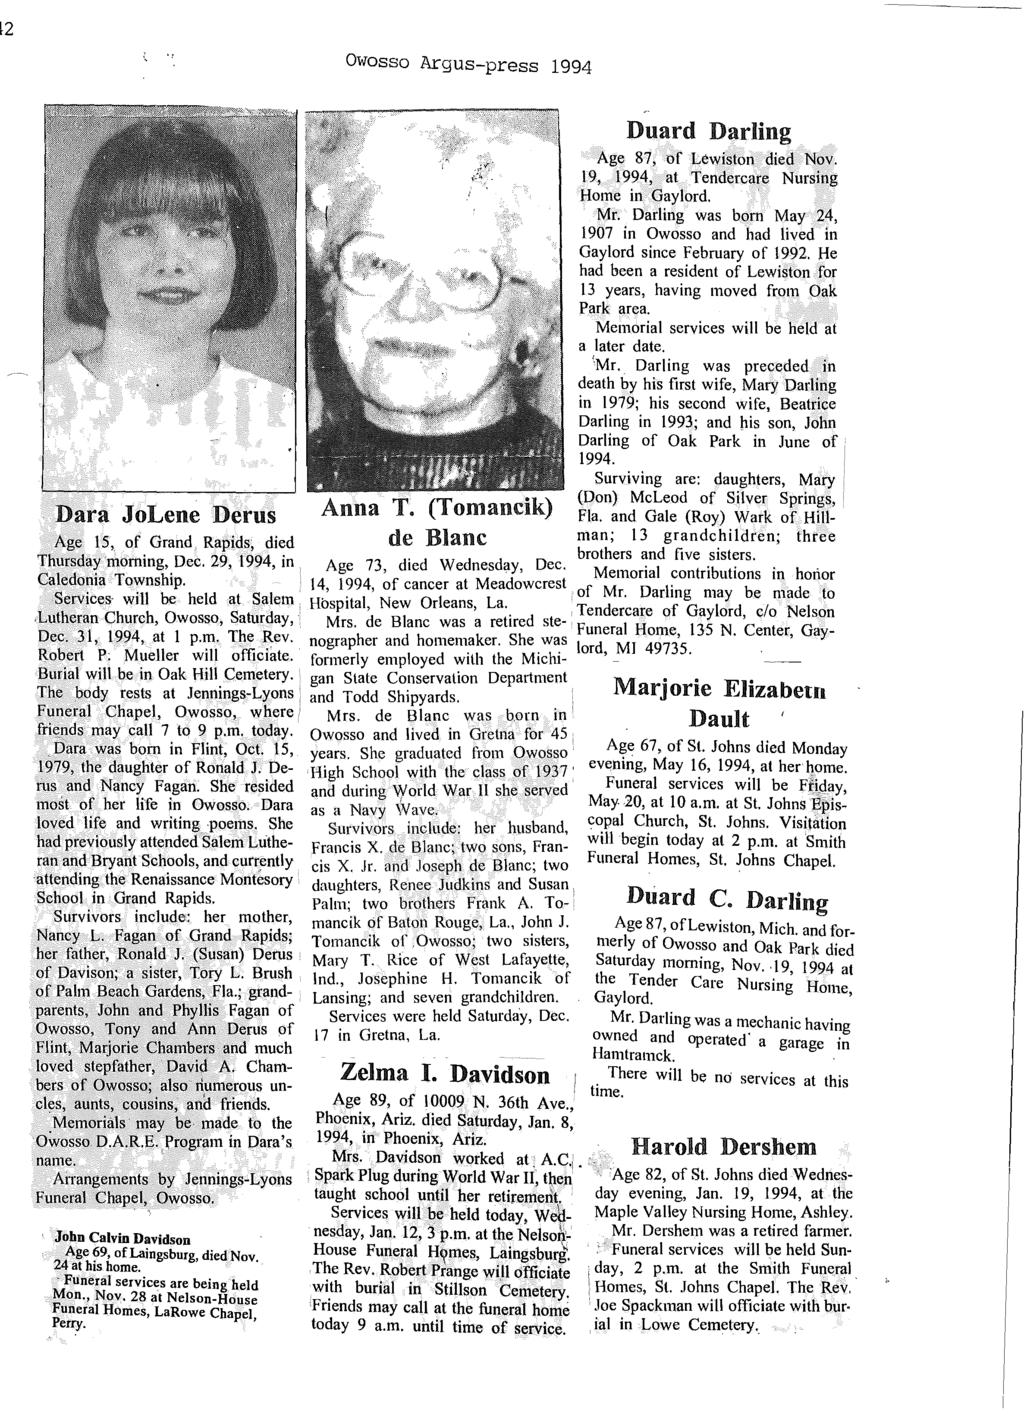 42., Owosso Argus-press 1994 Dara JoLene Derus Duard Darling Age 87, of Lewiston died Nov. 19, 1994, at Tendercare Nursing Home in Gaylord.. Mr.